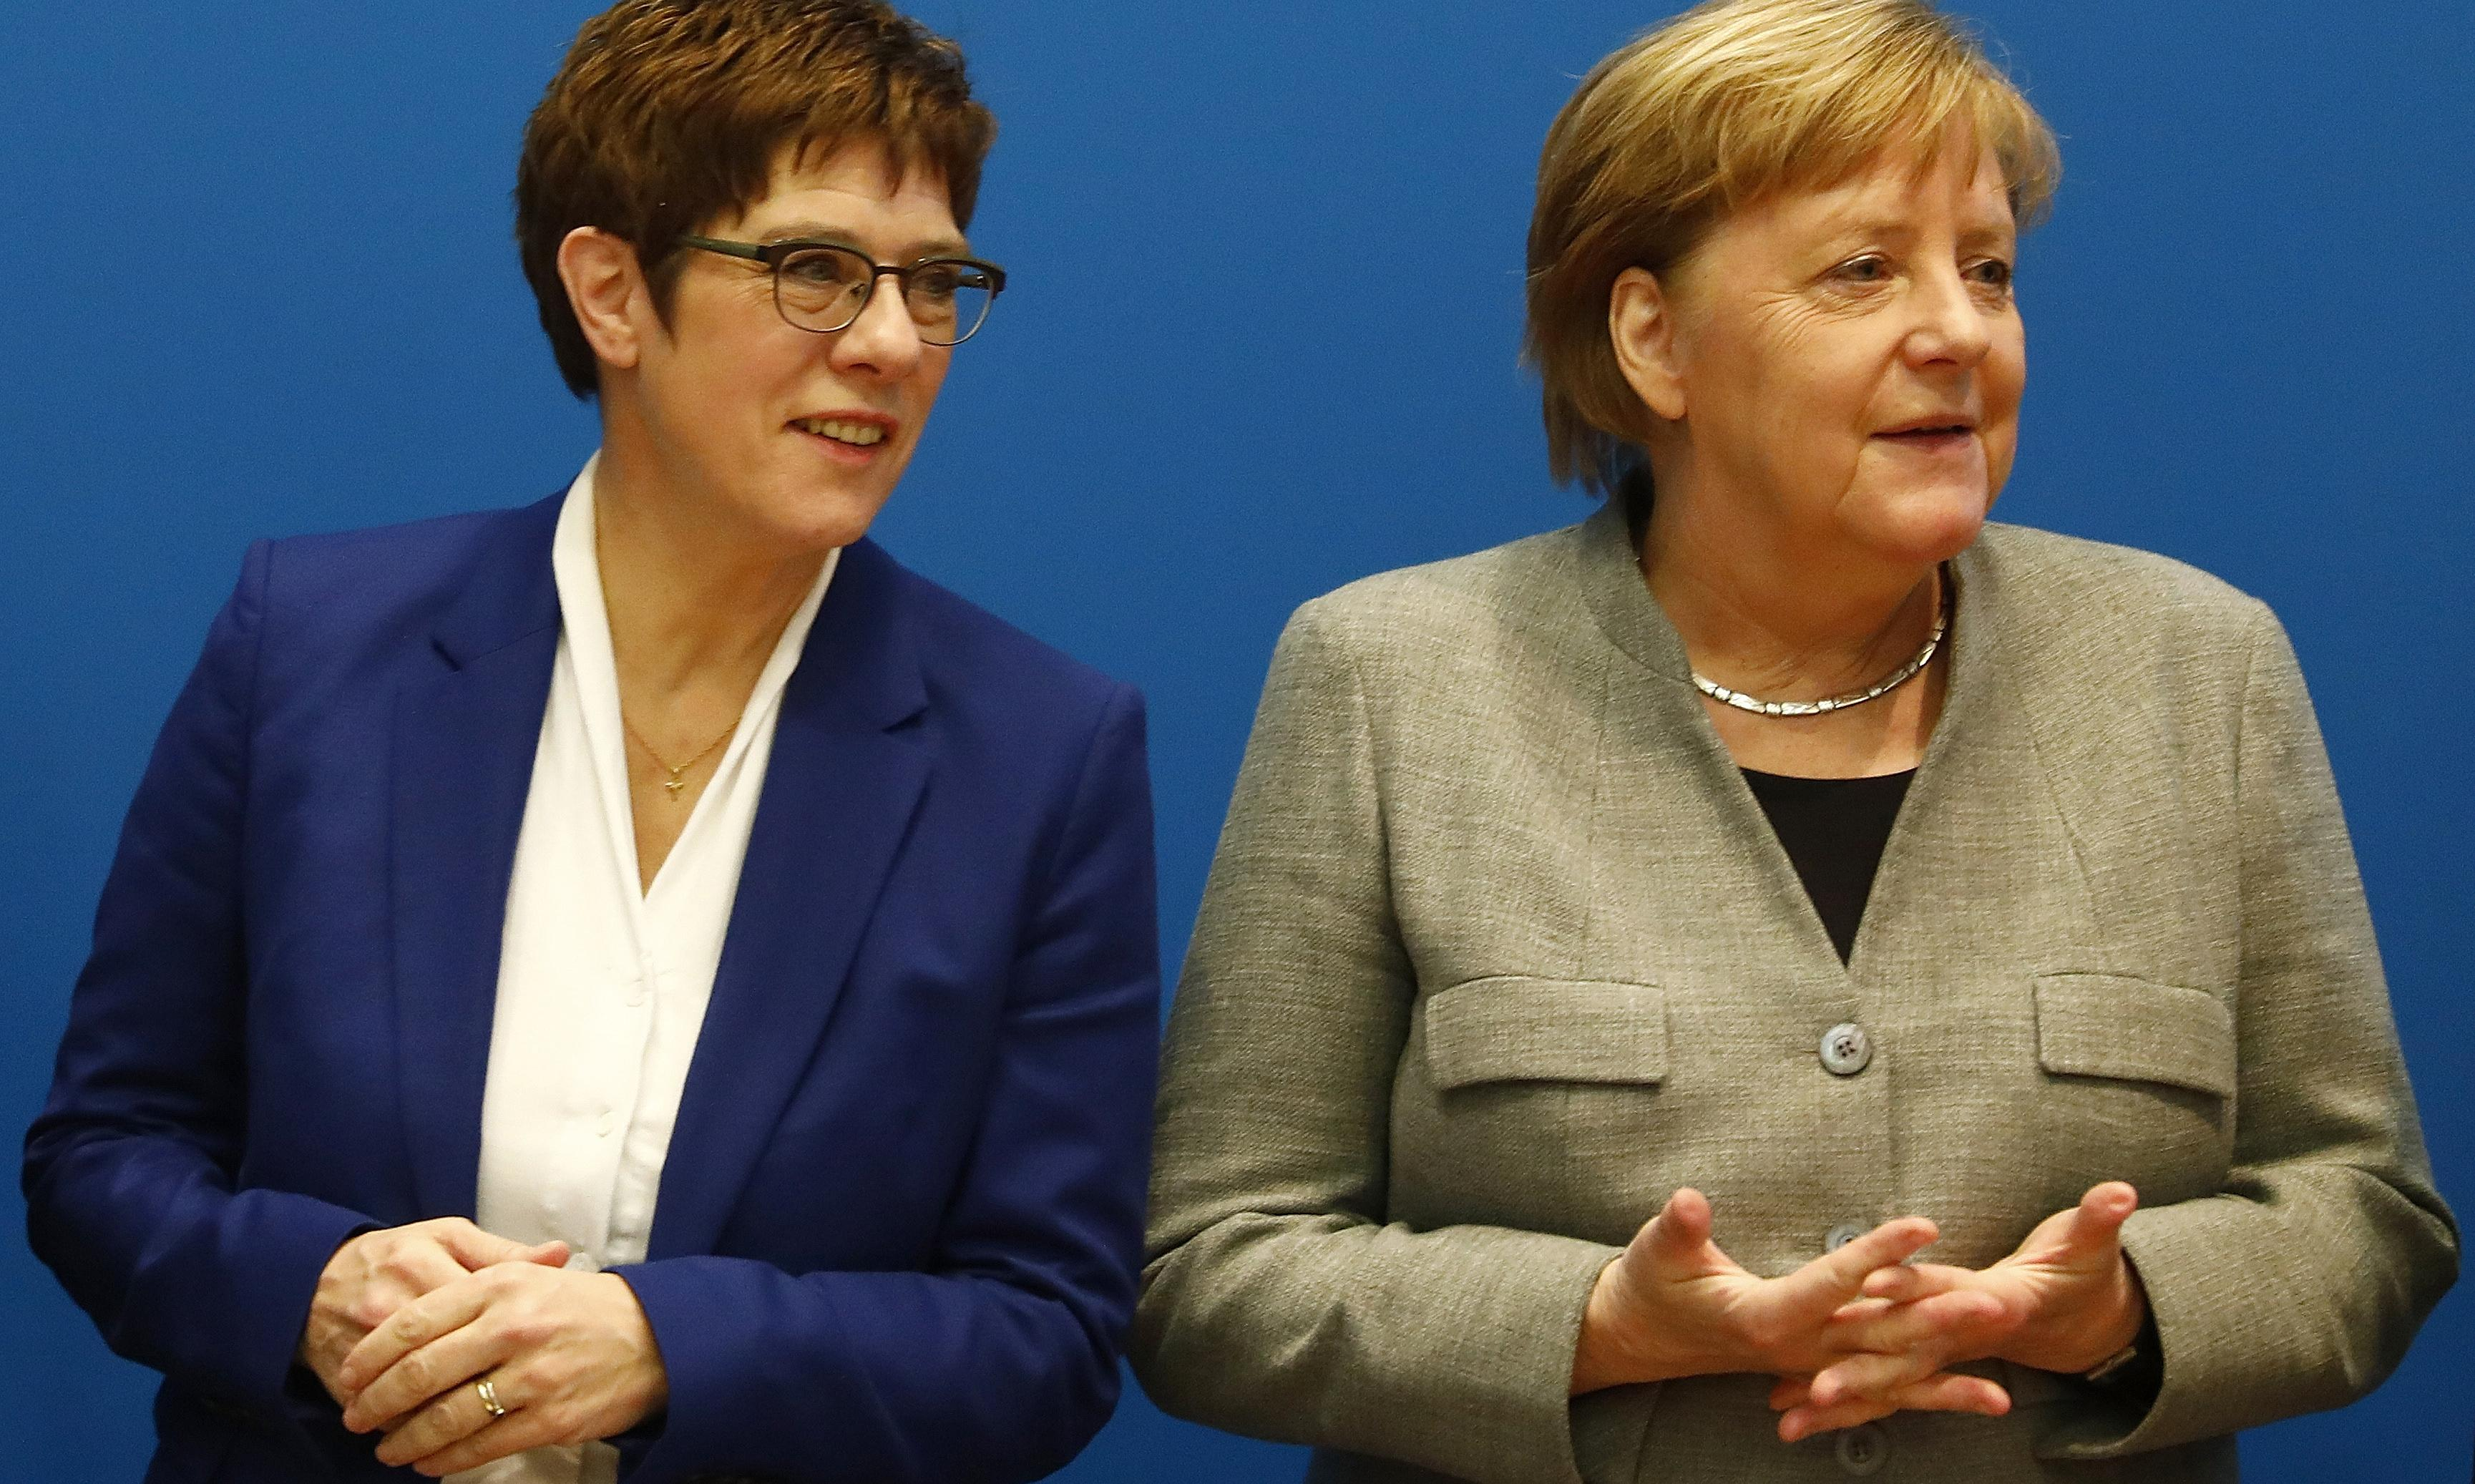 Germany's political crisis: how did it start and what comes next?